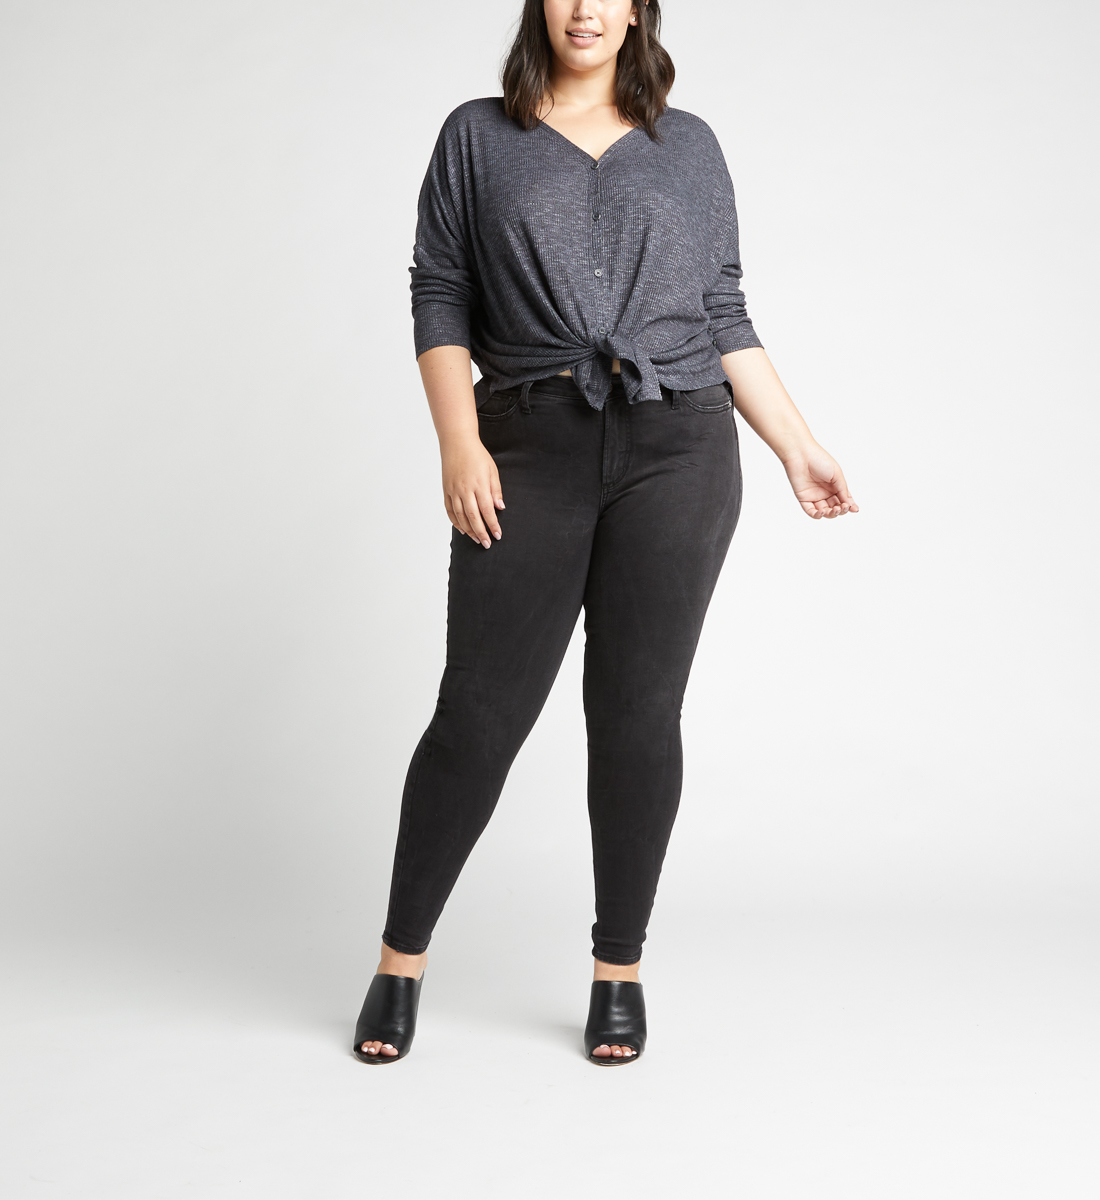 Amelia Button-Front Top Plus Size,Charcoal Back